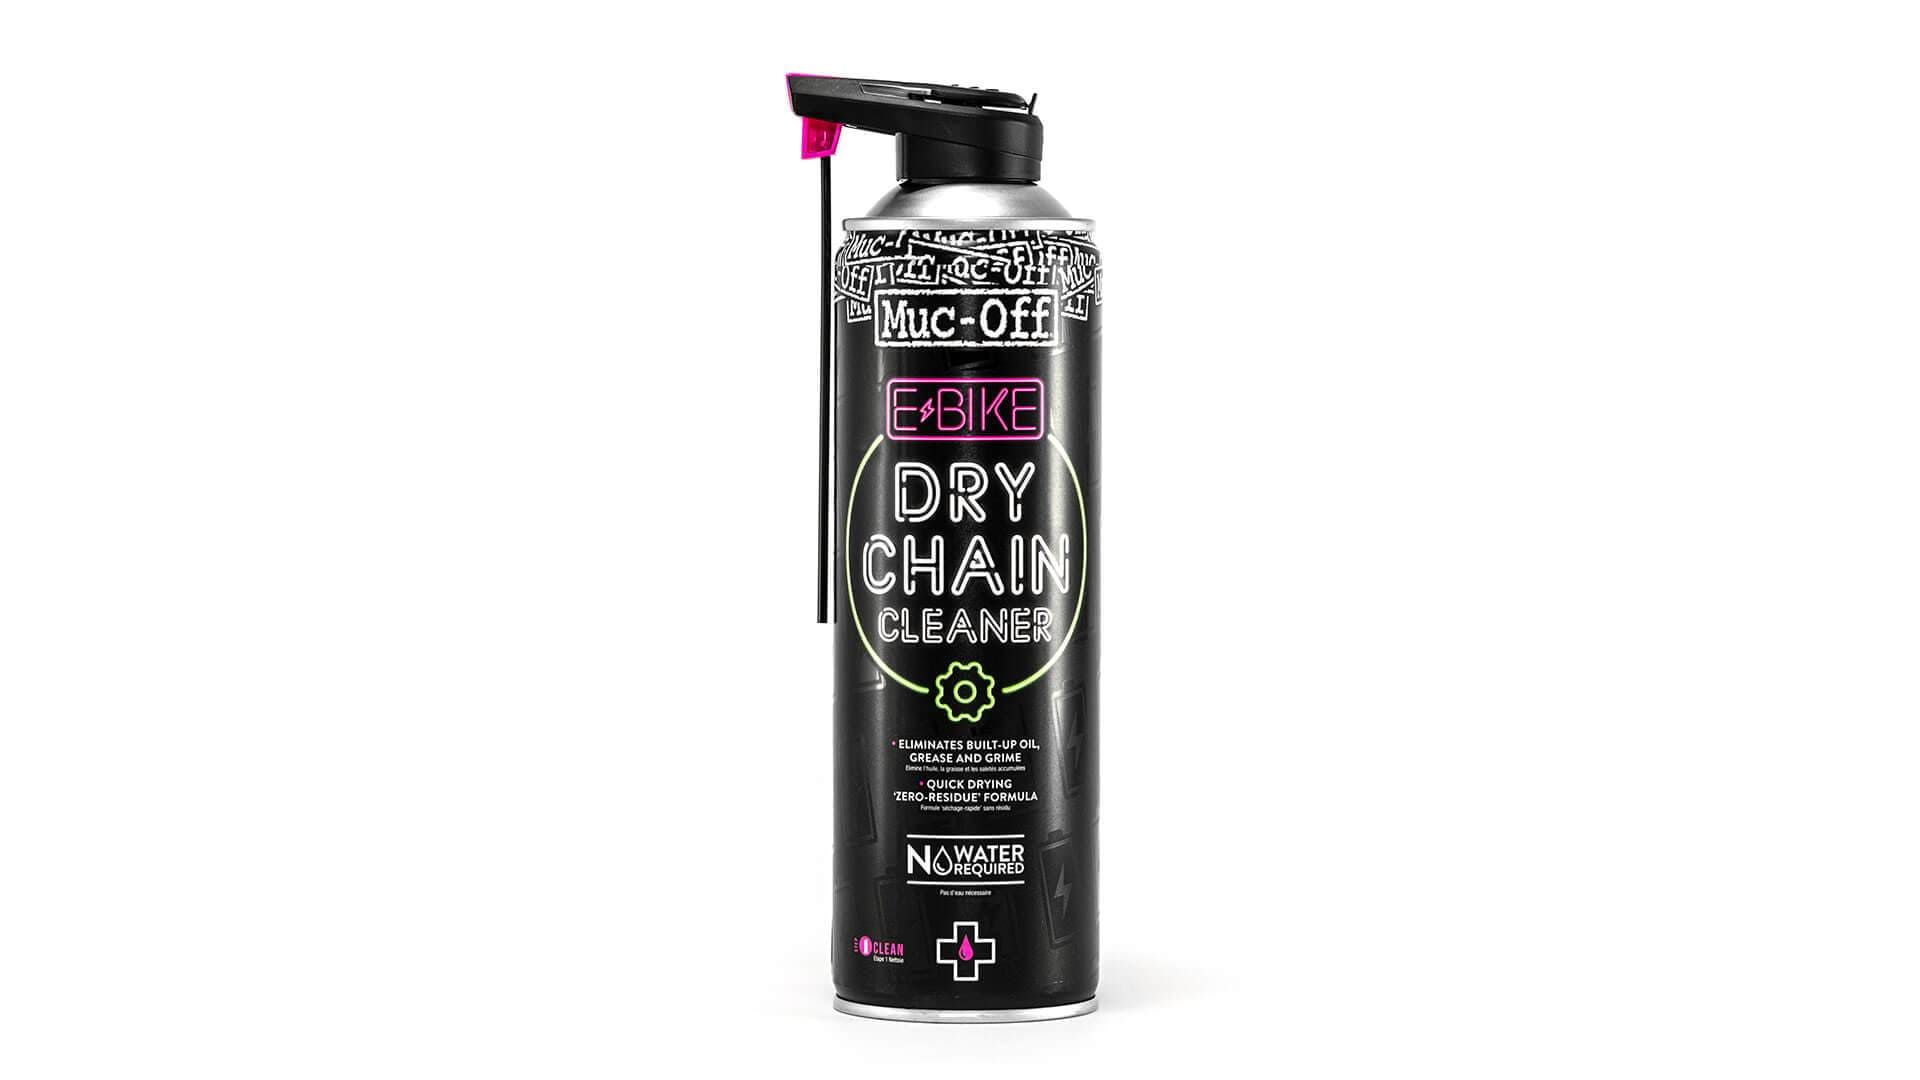 Muc-Off Multi-Rengöring, eBike Dry Chain Cleaner